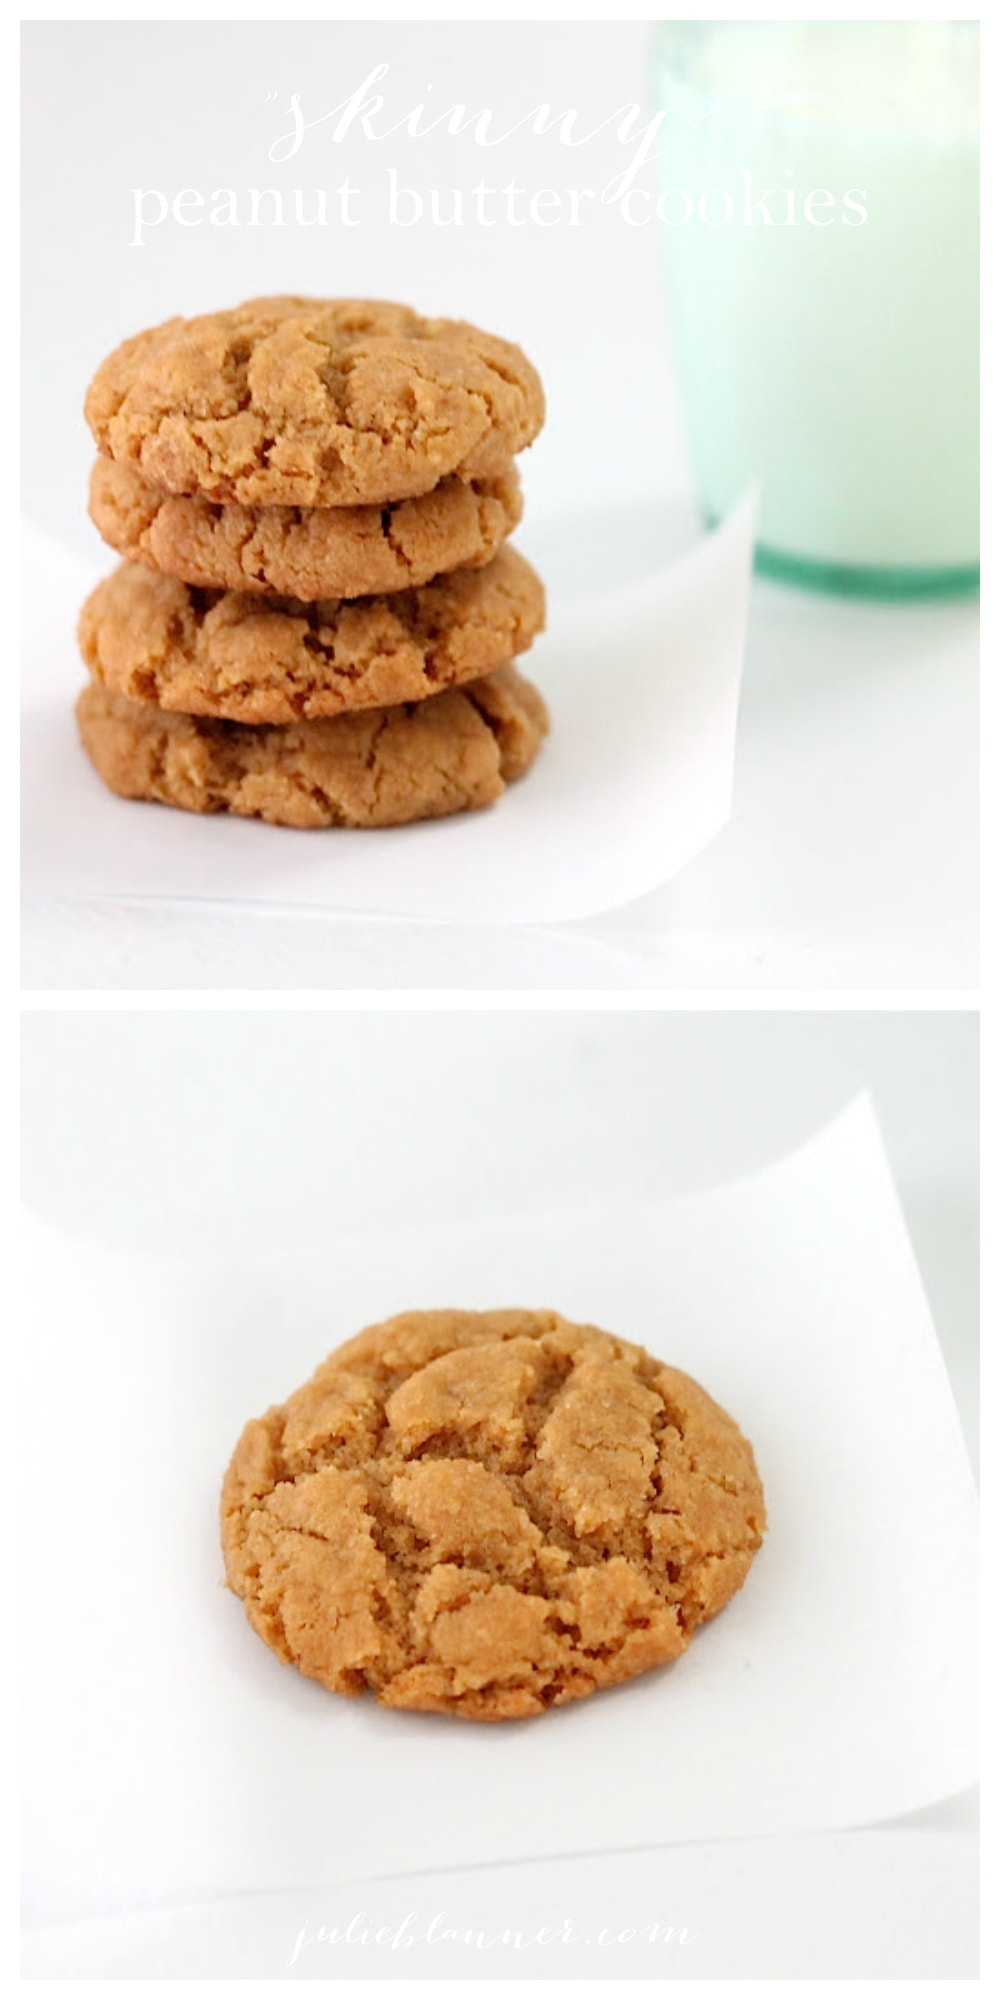 Skinny Peanut Butter Cookie recipe - a lower calorie, gluten free version that stacks up to the original!